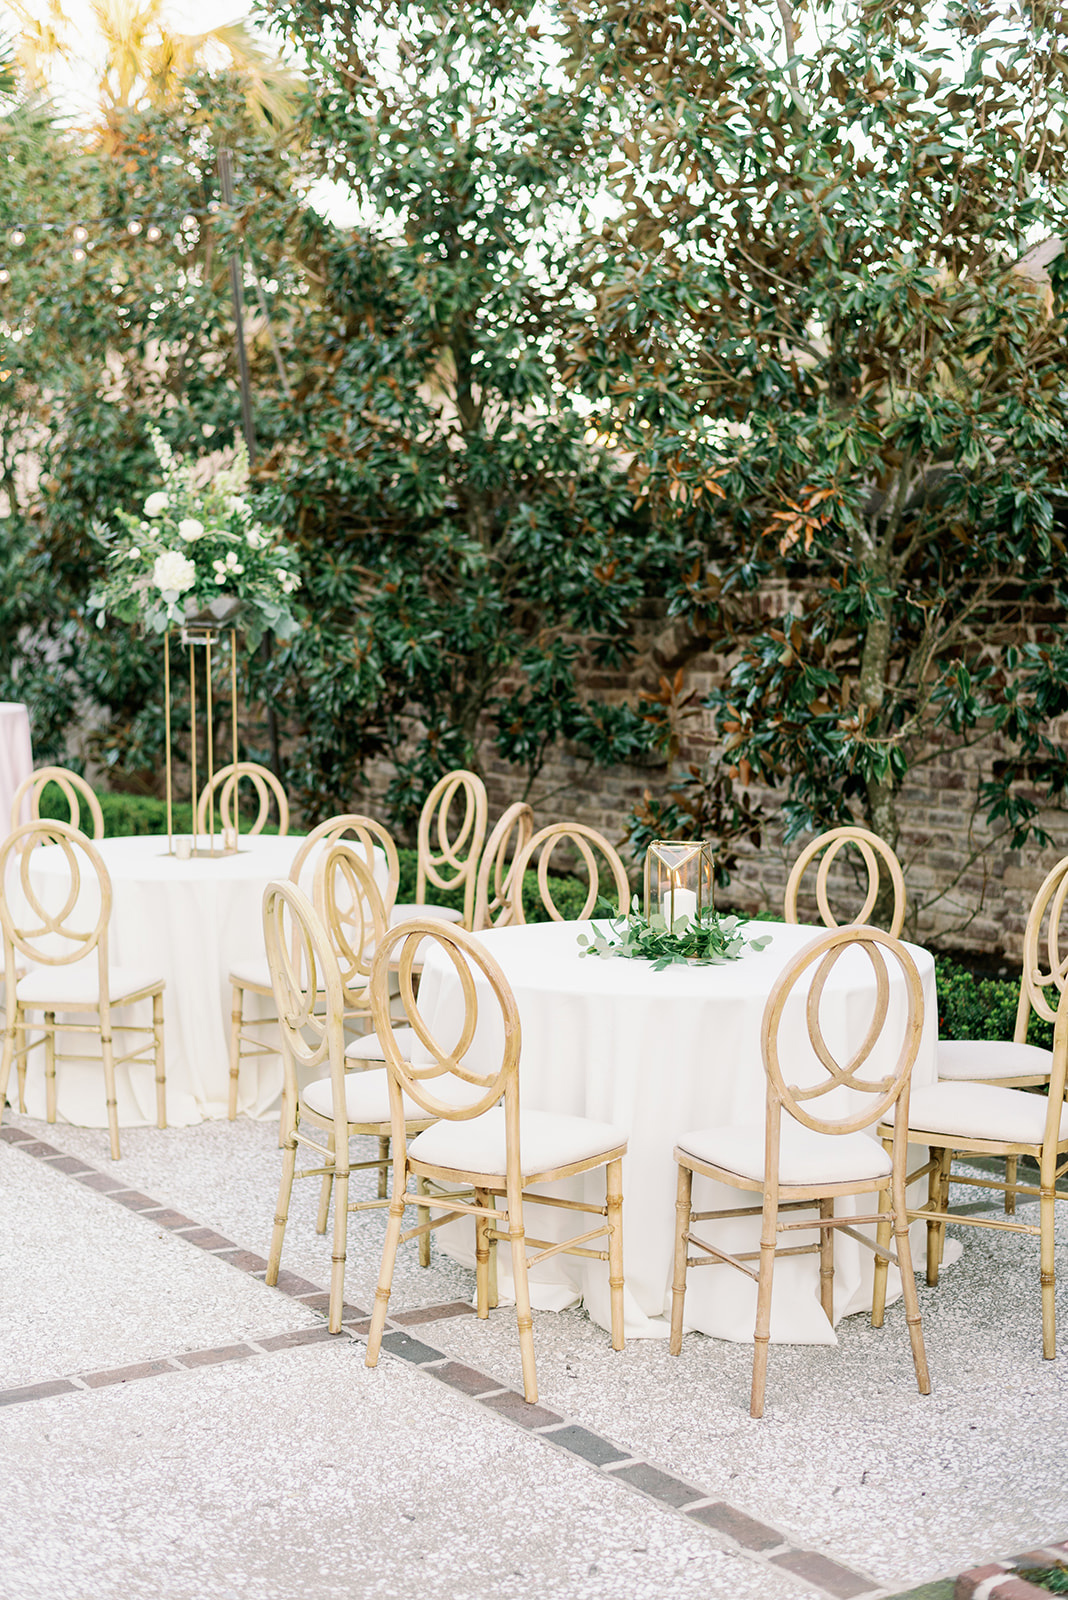 Round tables with simple greenery and petite lanterns